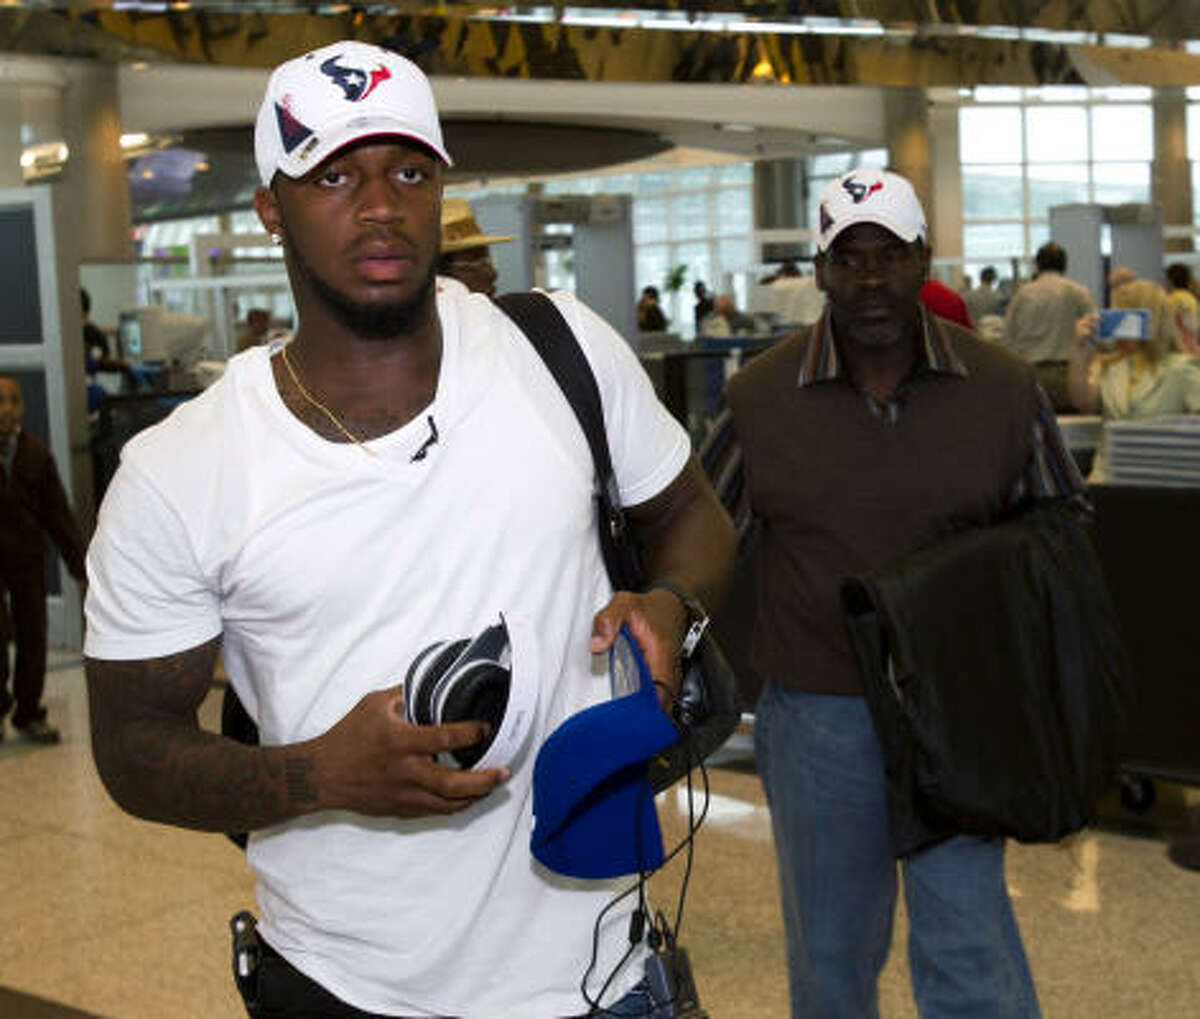 Texans first round draft pick Kareem Jackson walks with his father, Hezekiah, after arriving at Hobby Airport on Friday.